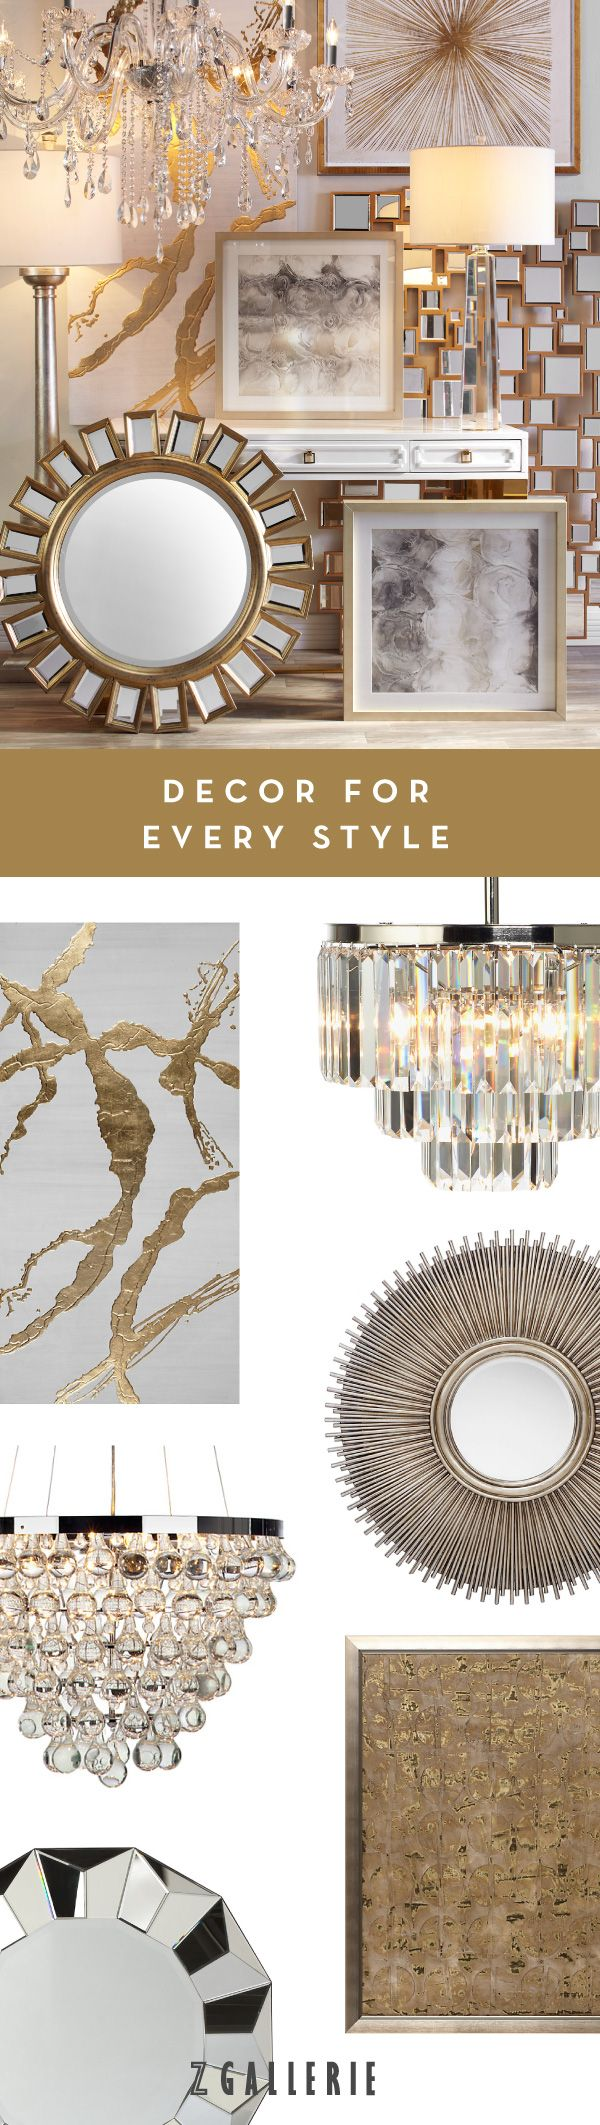 Curate Your Style With Our Latest Art Lighting Wall Decor And Mirrors From Our